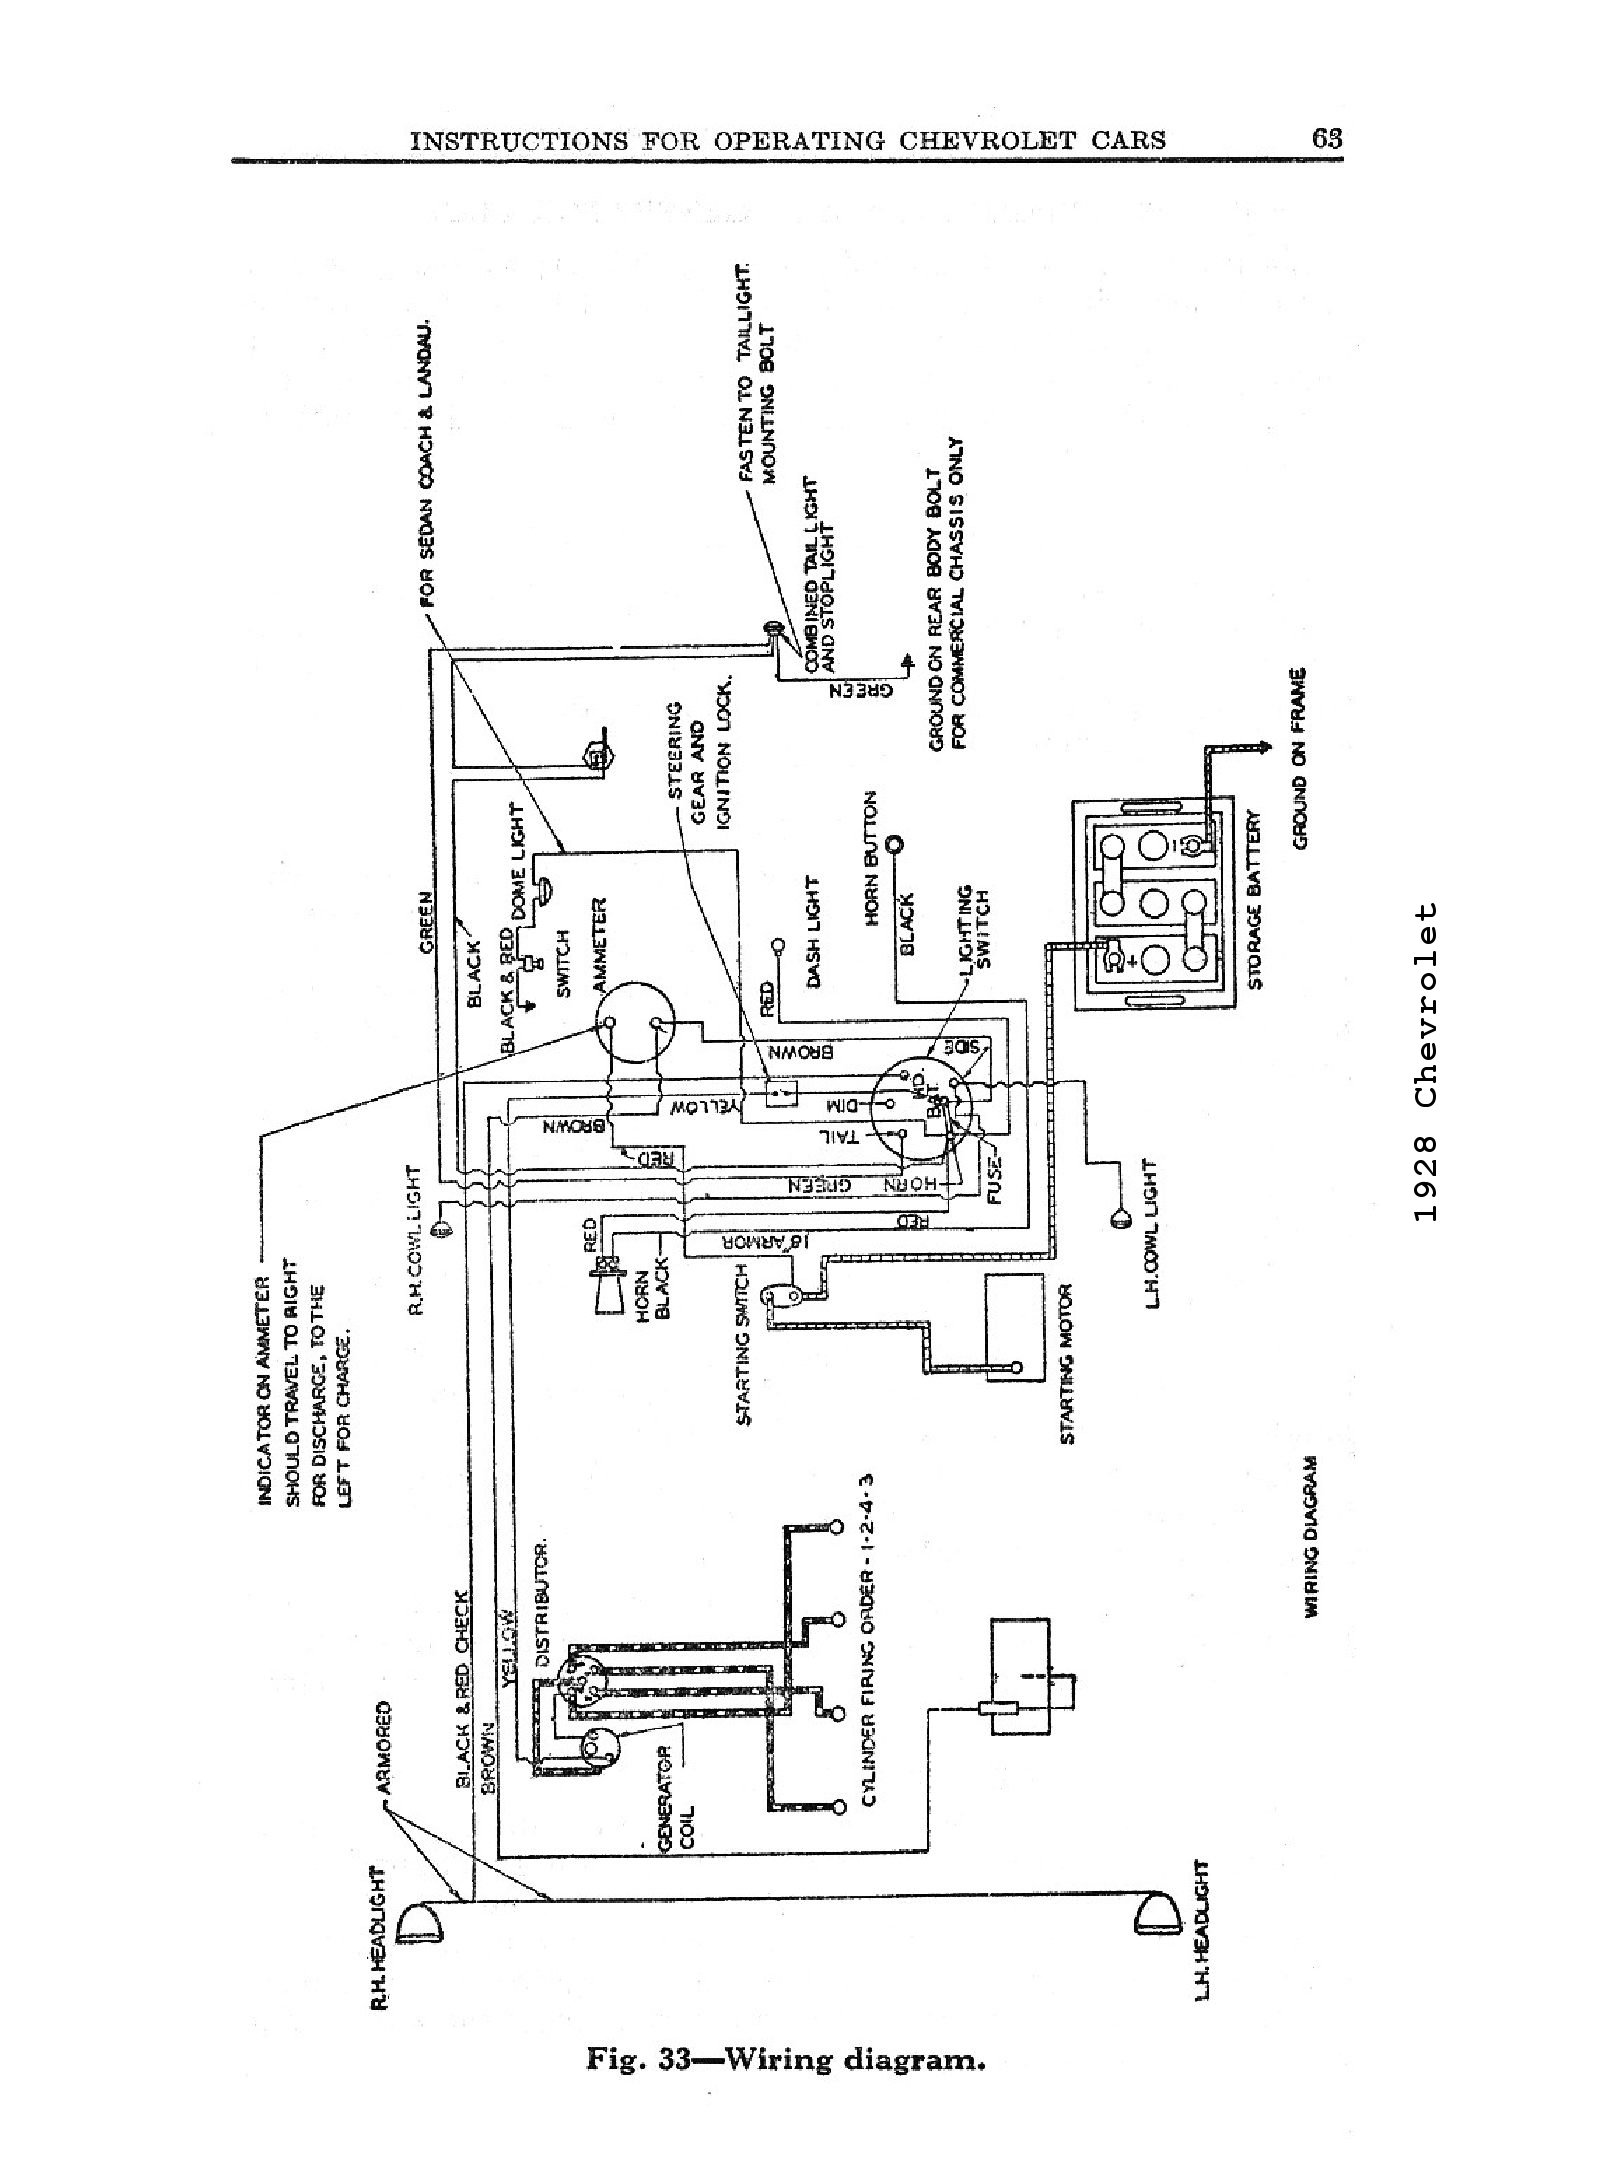 Circuit Diagram Of Tv Group Picture Image By Tag Keywordpictures